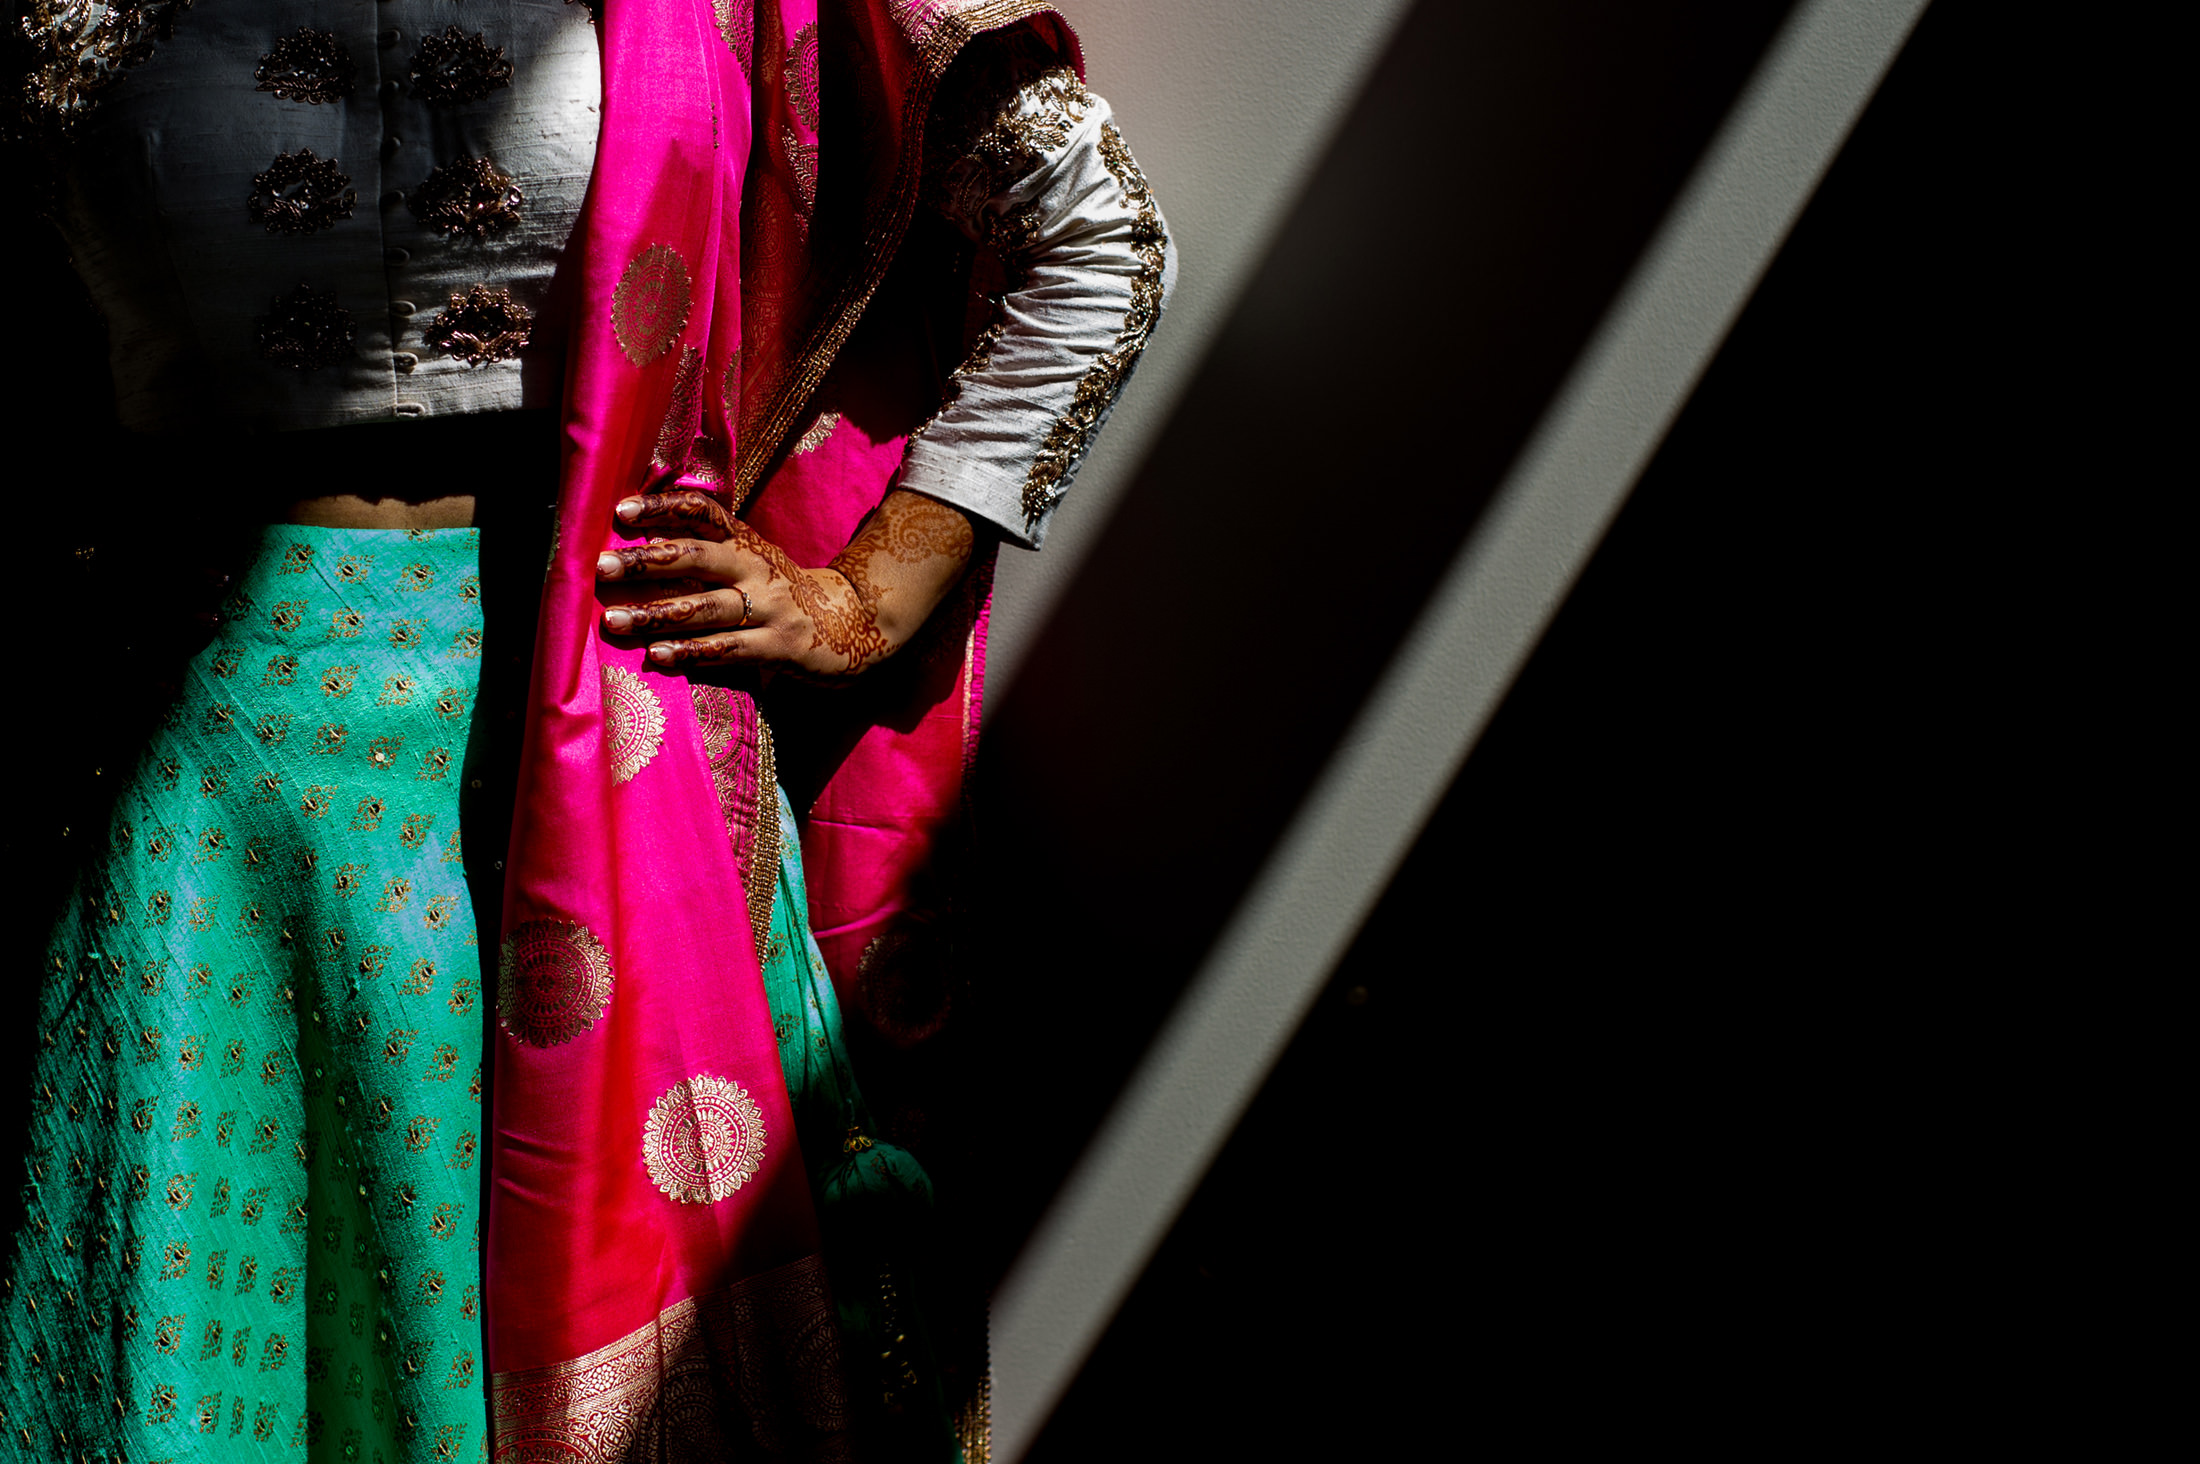 Edmonton_wedding_photographers_enjoy_center_wedding_Kiran_faisal_04.jpg